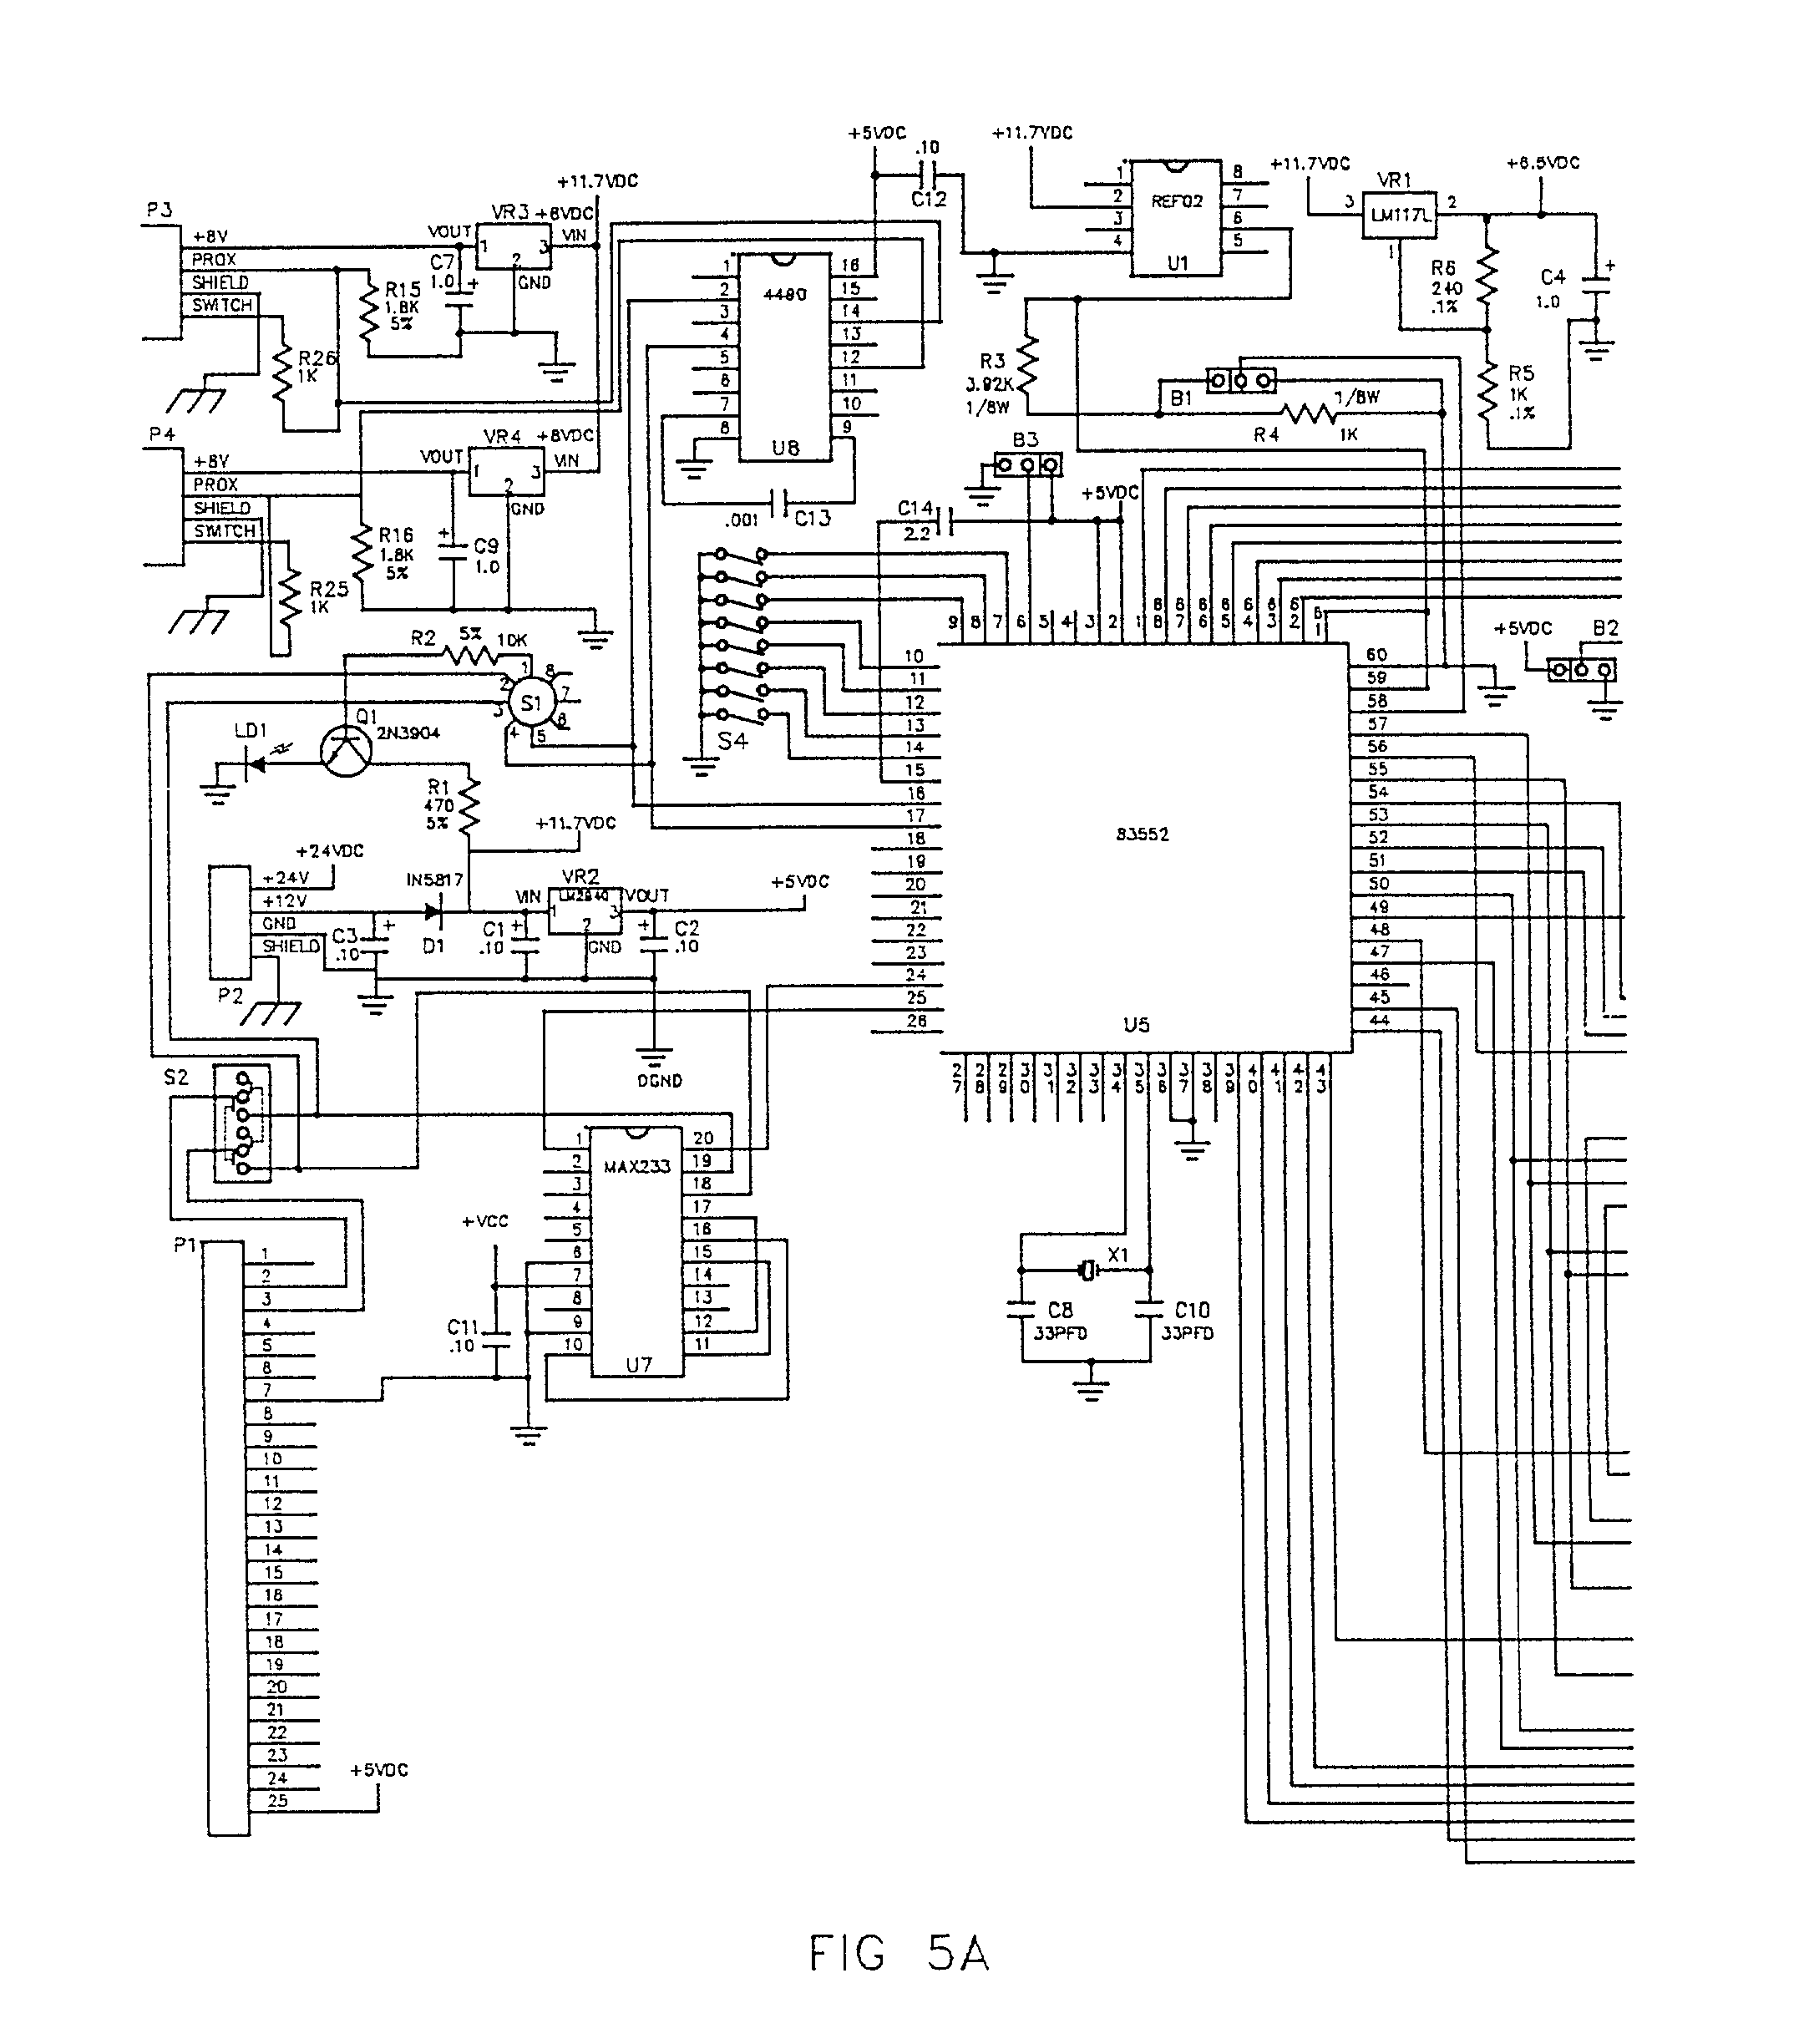 Rcd 300 Wiring Diagram Not Lossing Volkswagen 310 Jeffdoedesign Com 3 Phase Residual Current Device Vw